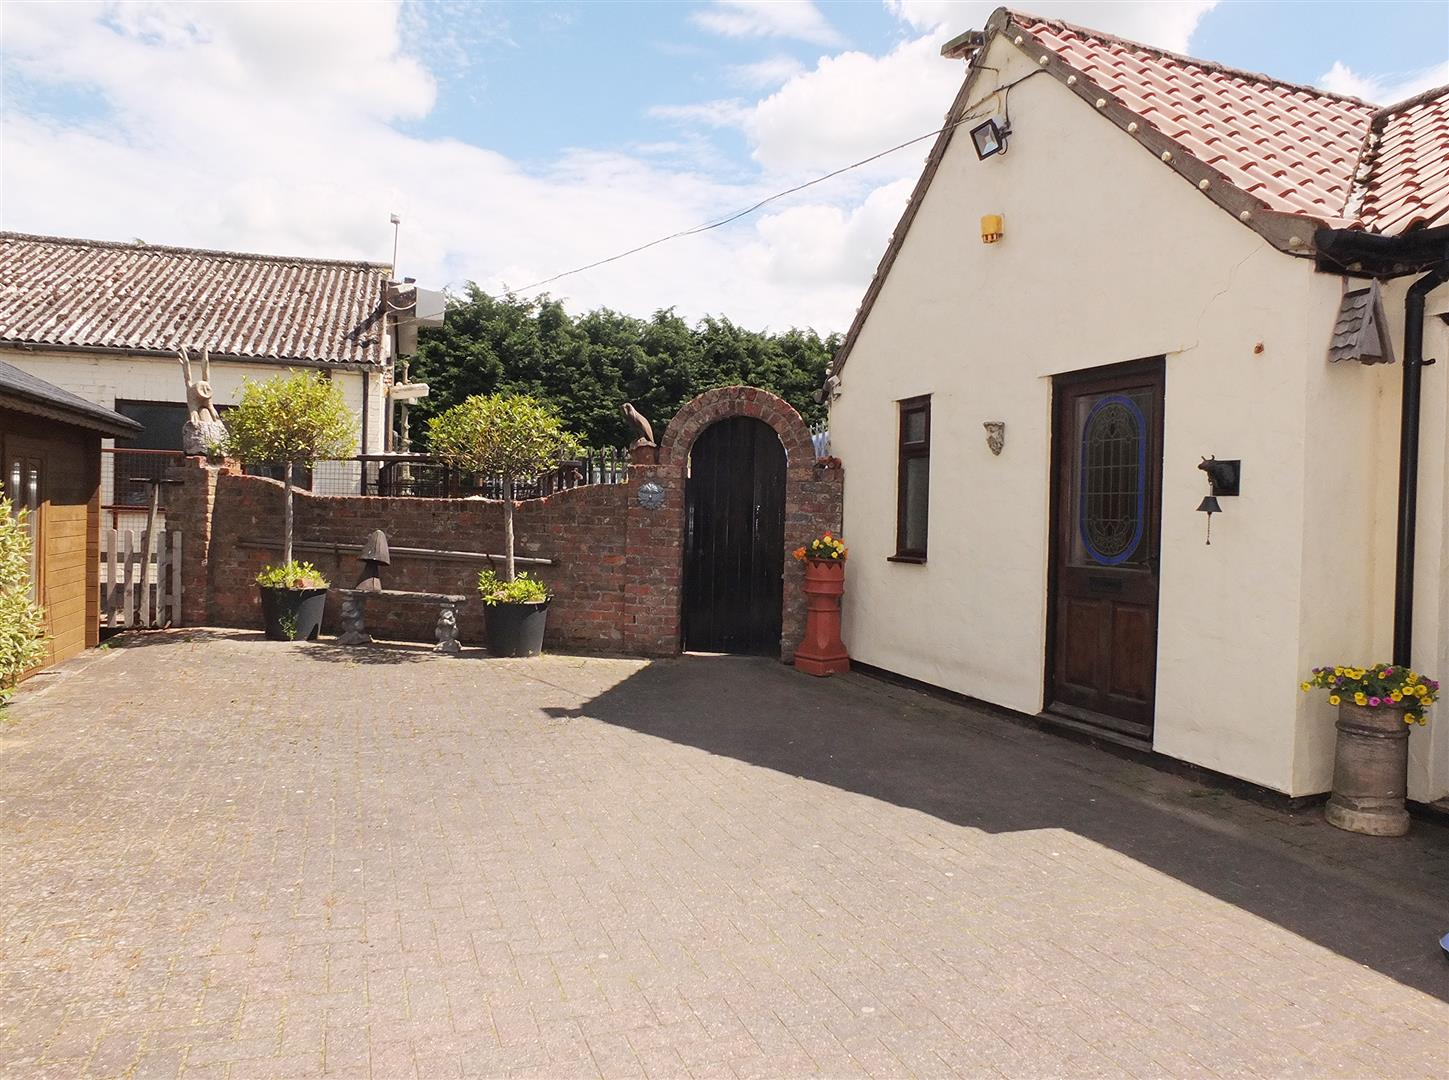 5 bed detached house for sale in Boston, PE20 2DB  - Property Image 34